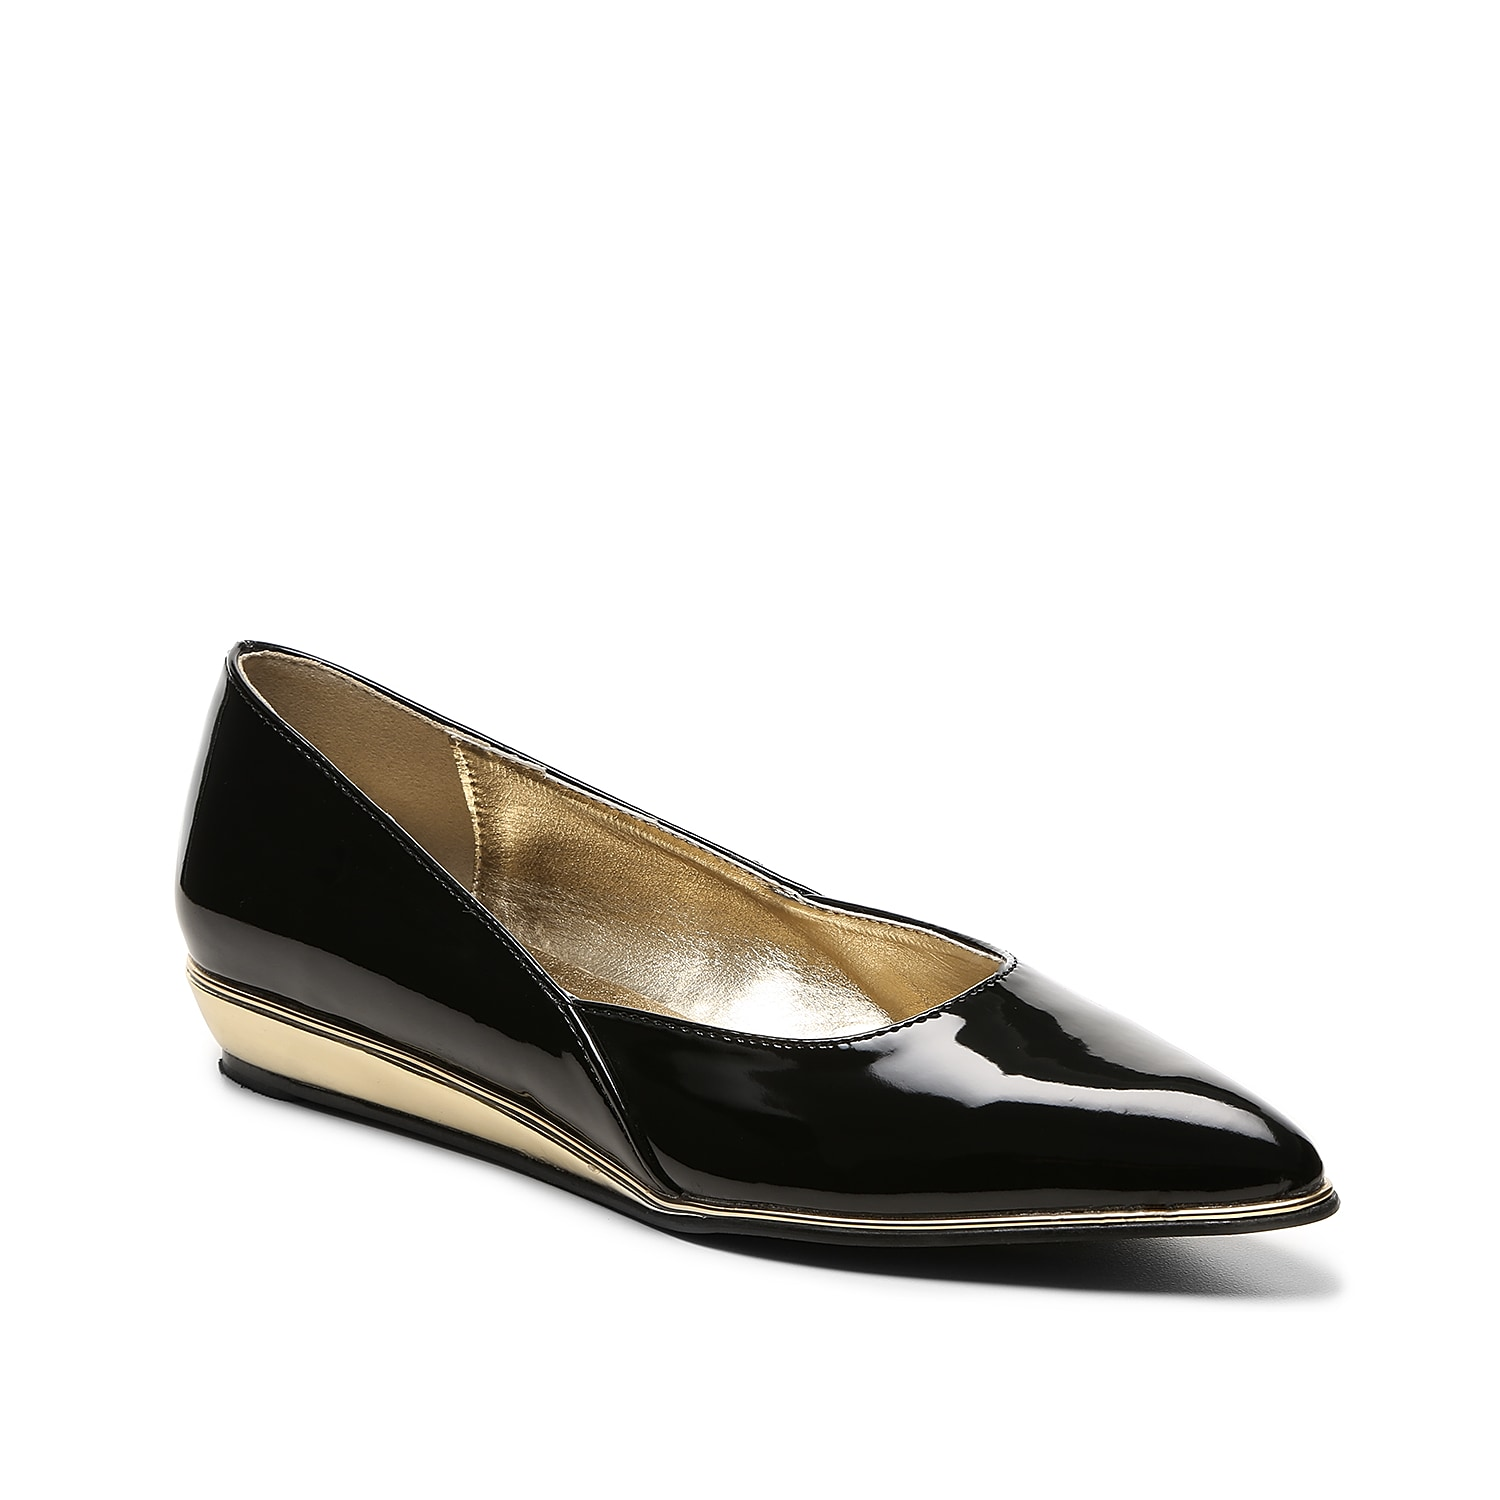 This simple patent wedge from Bellini is just what you need to elevate your basic pointed toe collection. Try the Famous flat today!